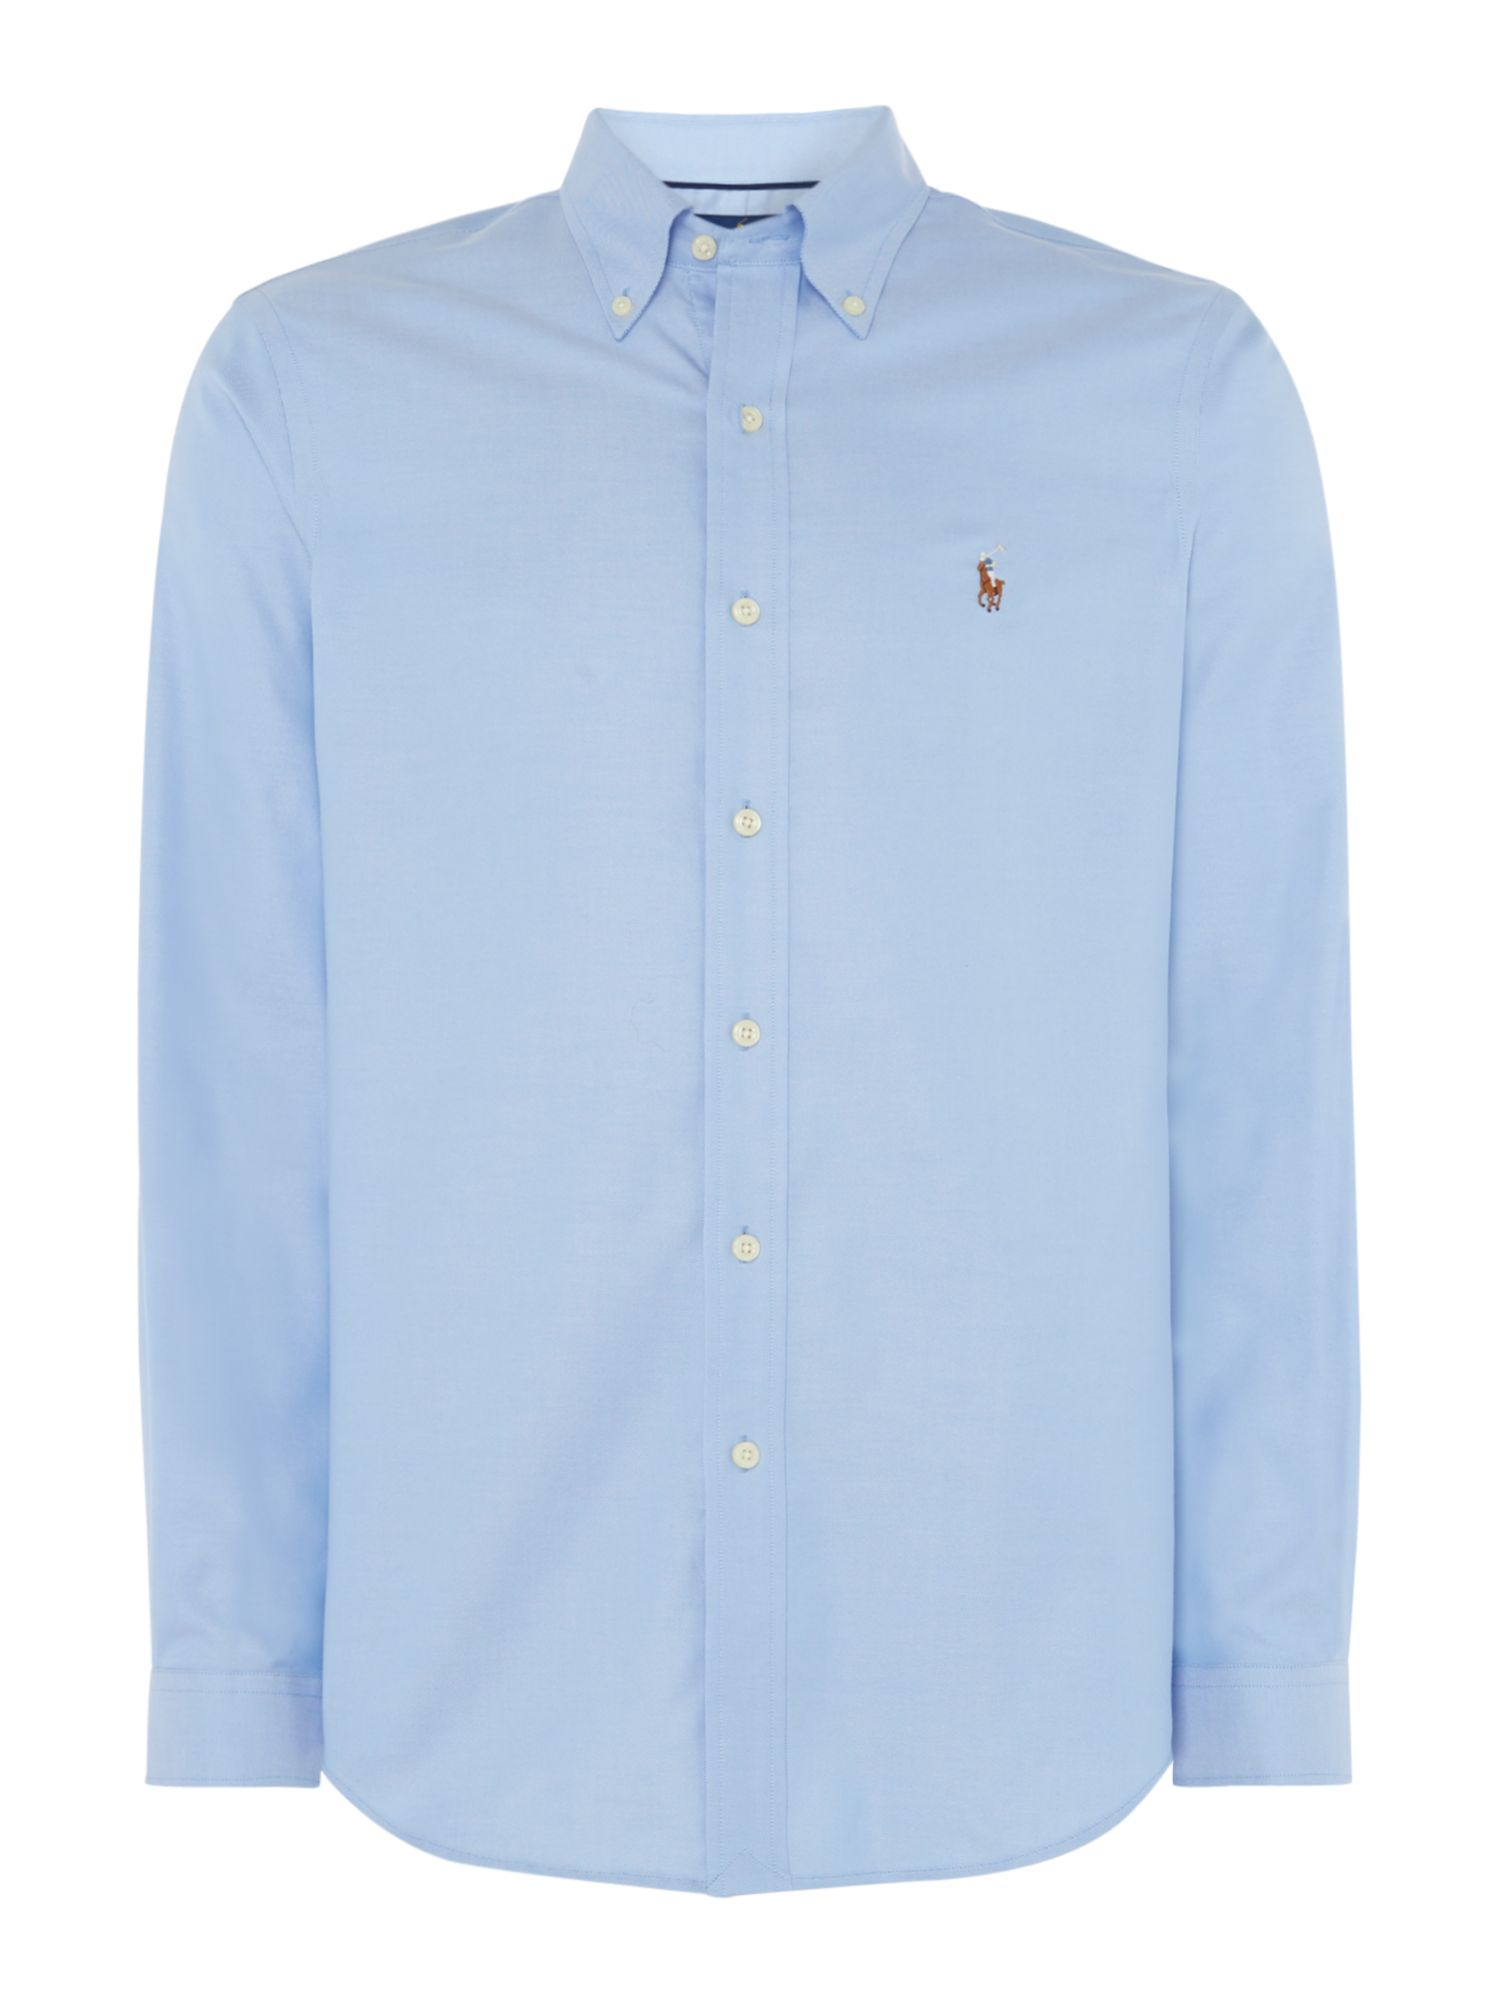 Polo Ralph Lauren Golf Plain Oxford Non-Iron Dress Shirt ...